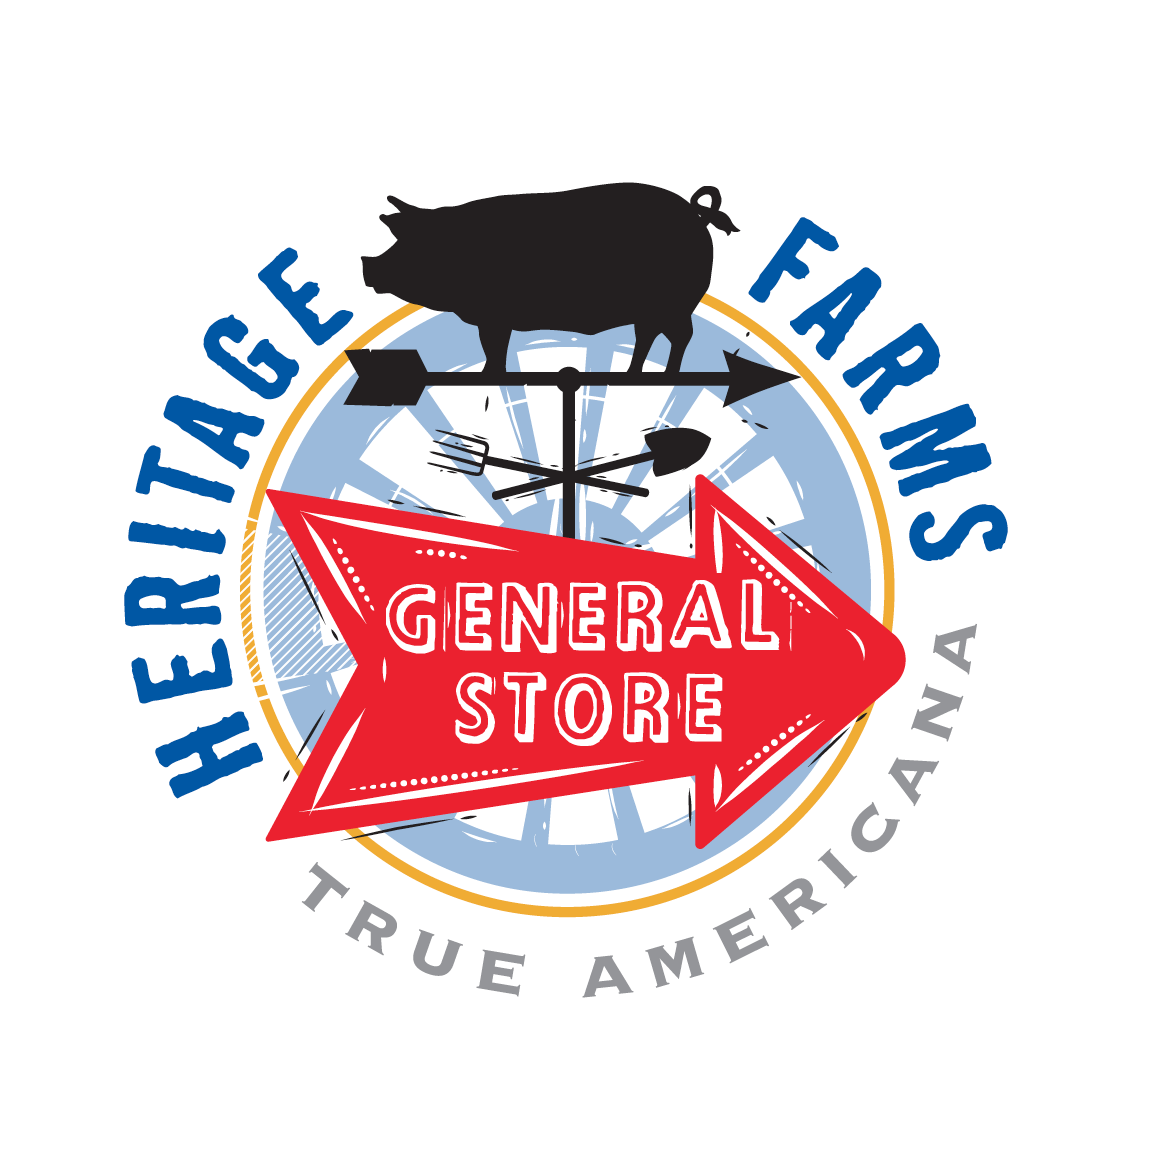 Heritage Farms General Store and Pork Outlet